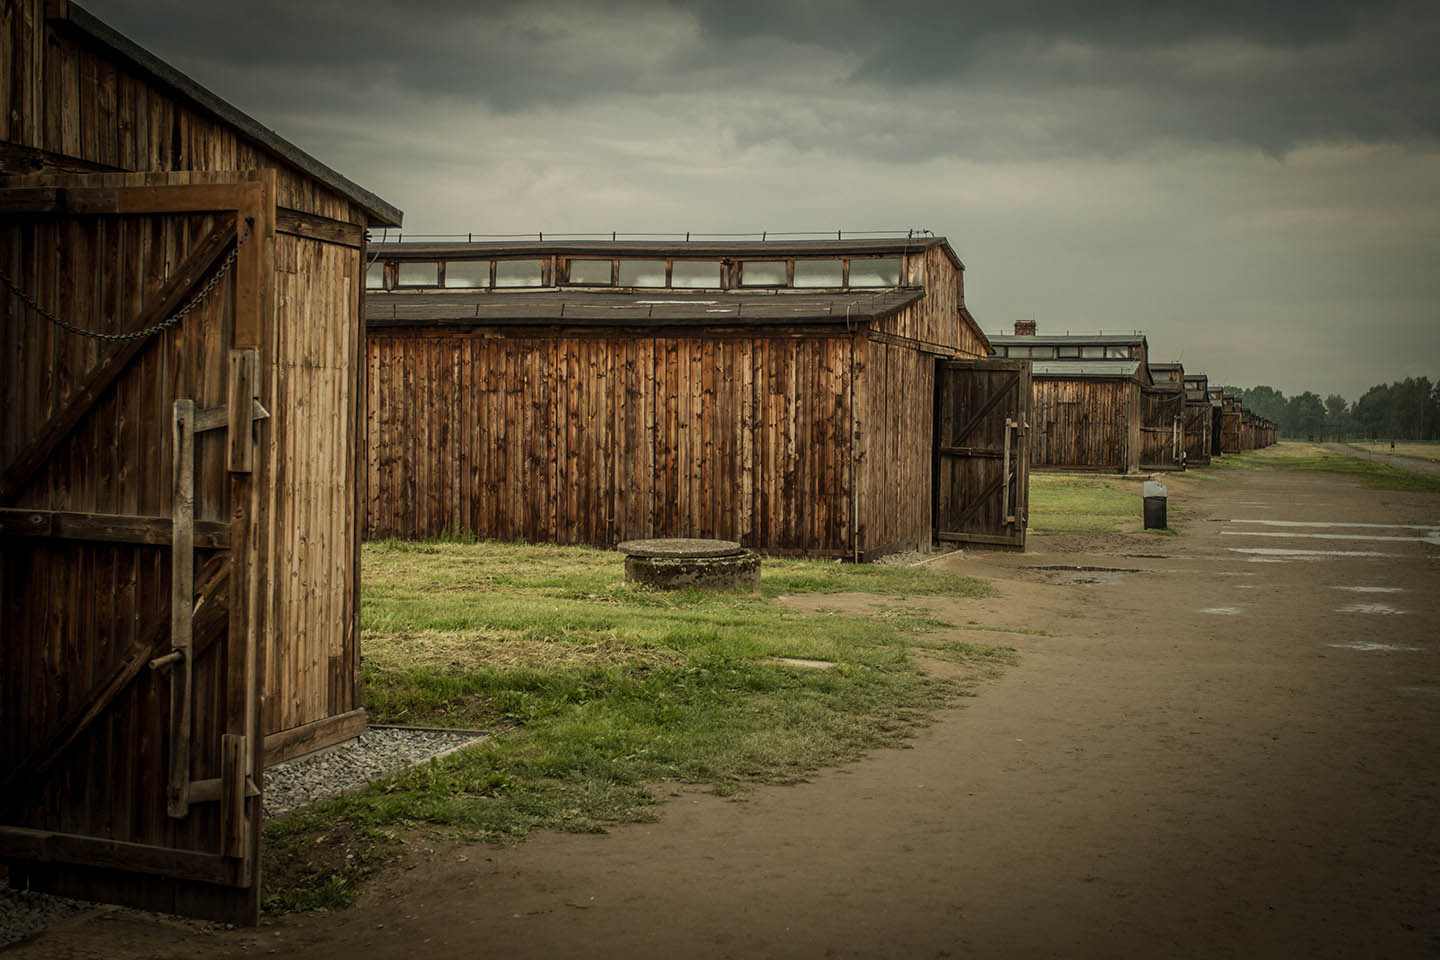 Baracke houses at the concentration Camp Birkenau / Konzentrationslager Baracke